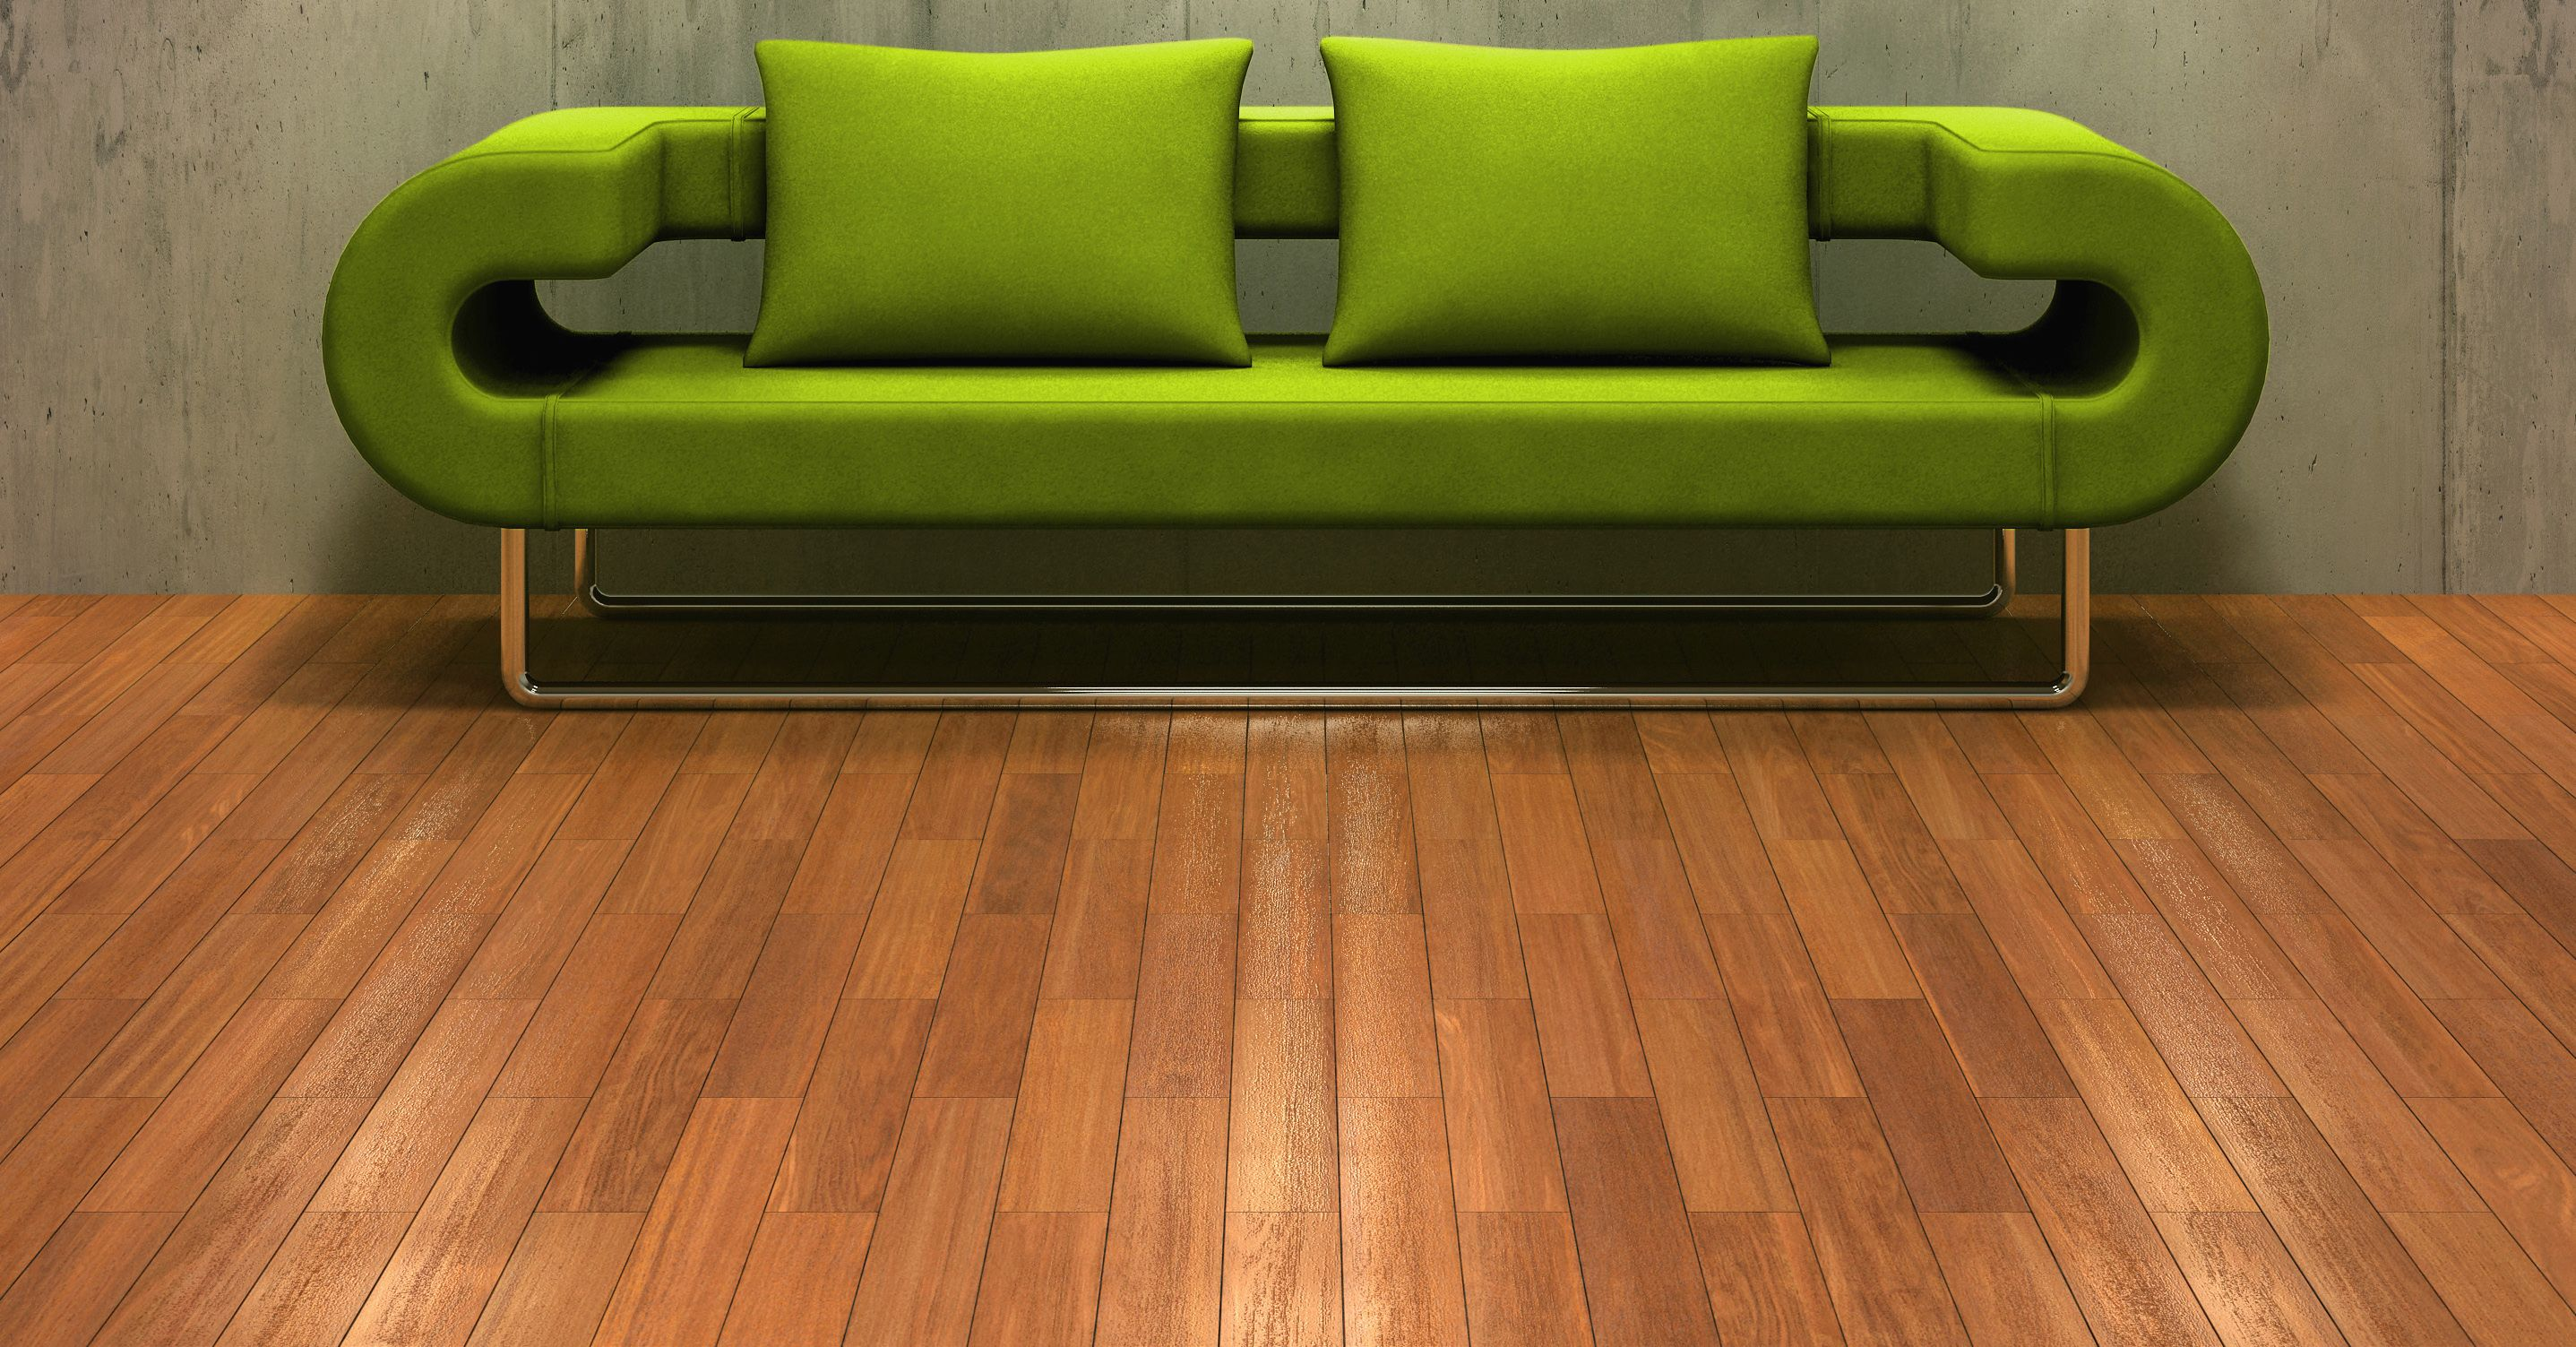 Cleaning wood floors a simple how to cleaning wood floors